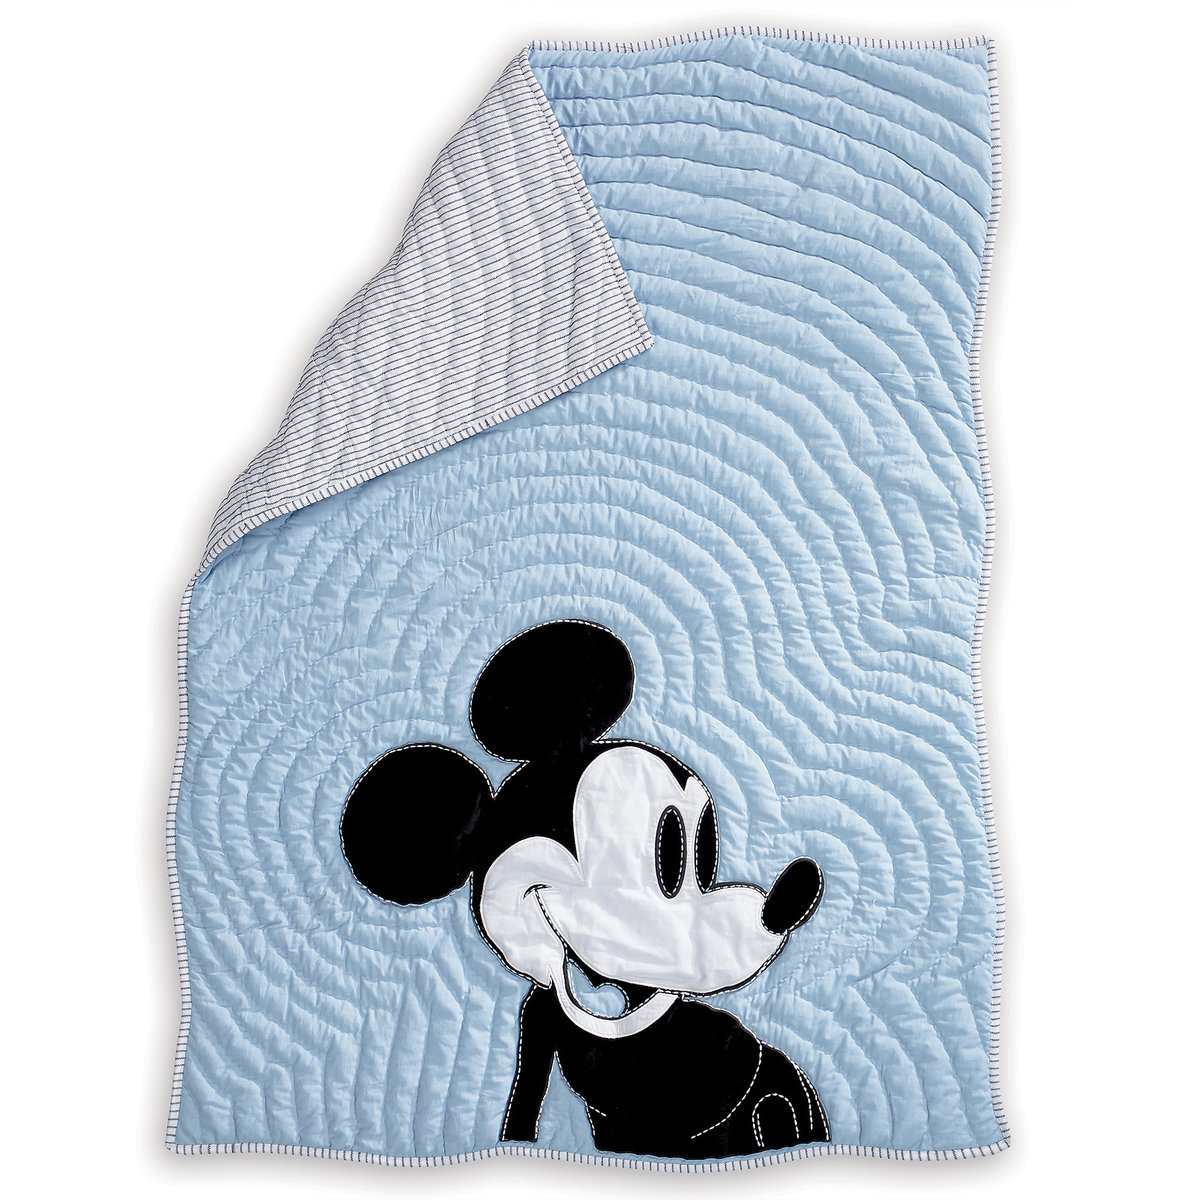 Mickey Mouse Color Toddler Quilt by Ethan Allen | Top 25 Disney Gift Ideas for Toddlers featured by top US Disney blogger, Marcie and the Mouse